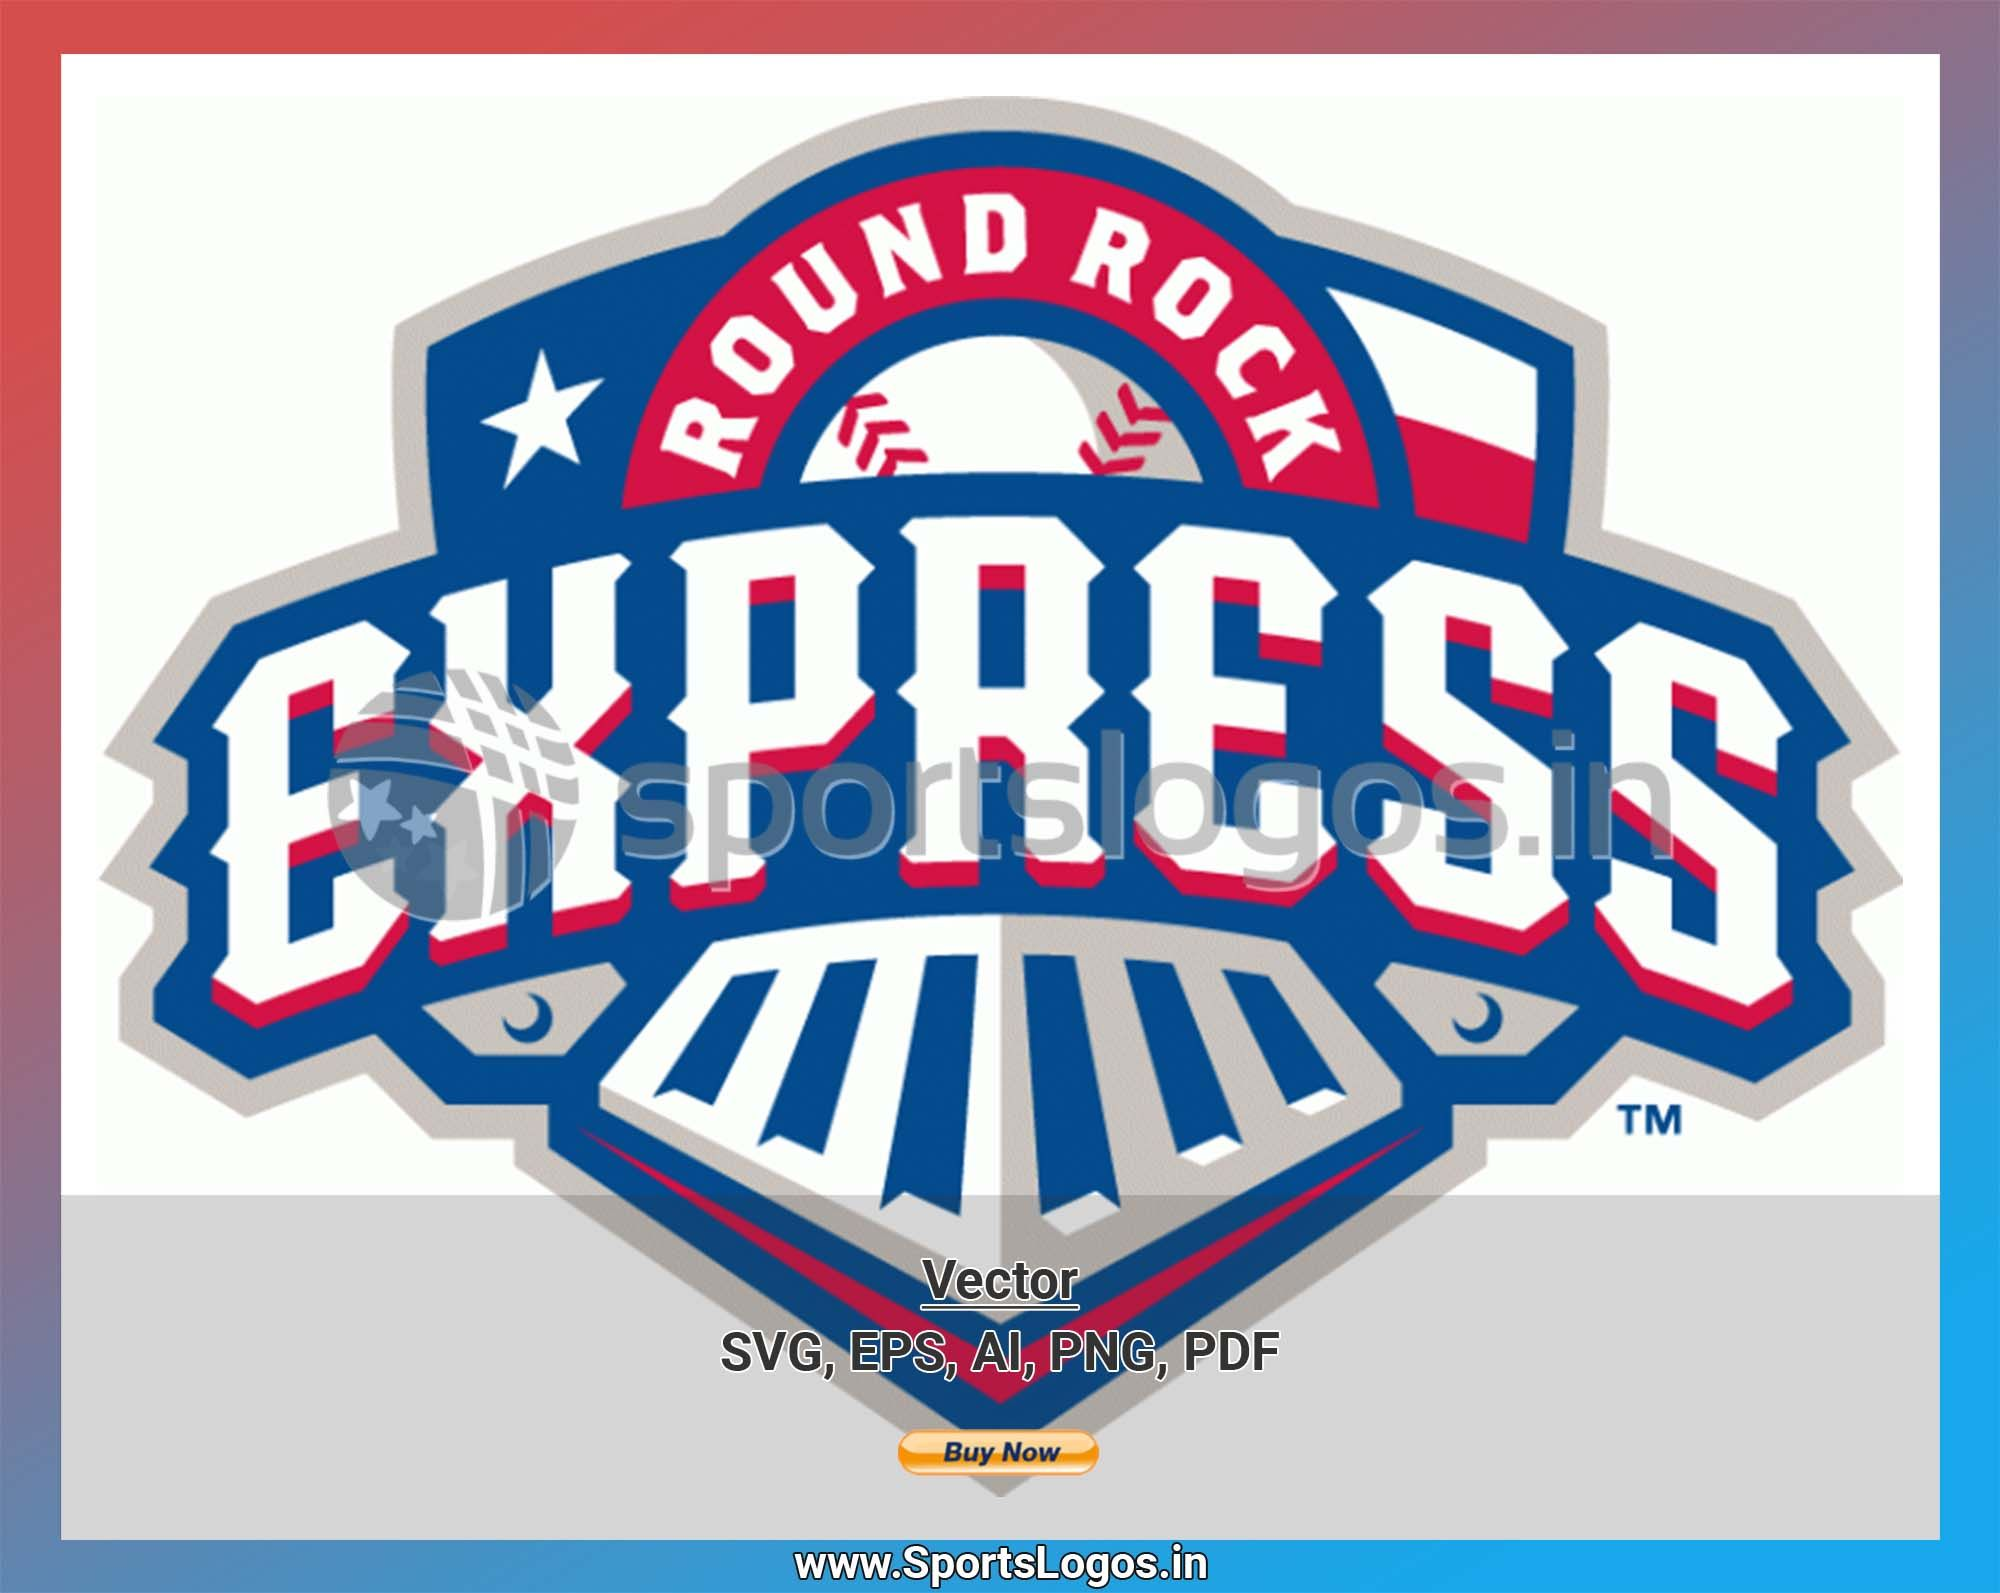 Round Rock Express Baseball Sports Vector Svg Logo In 5 Formats Spln003695 Sports Logos Embroidery Vector For Nfl Nba Nhl Mlb Milb And More Round Rock